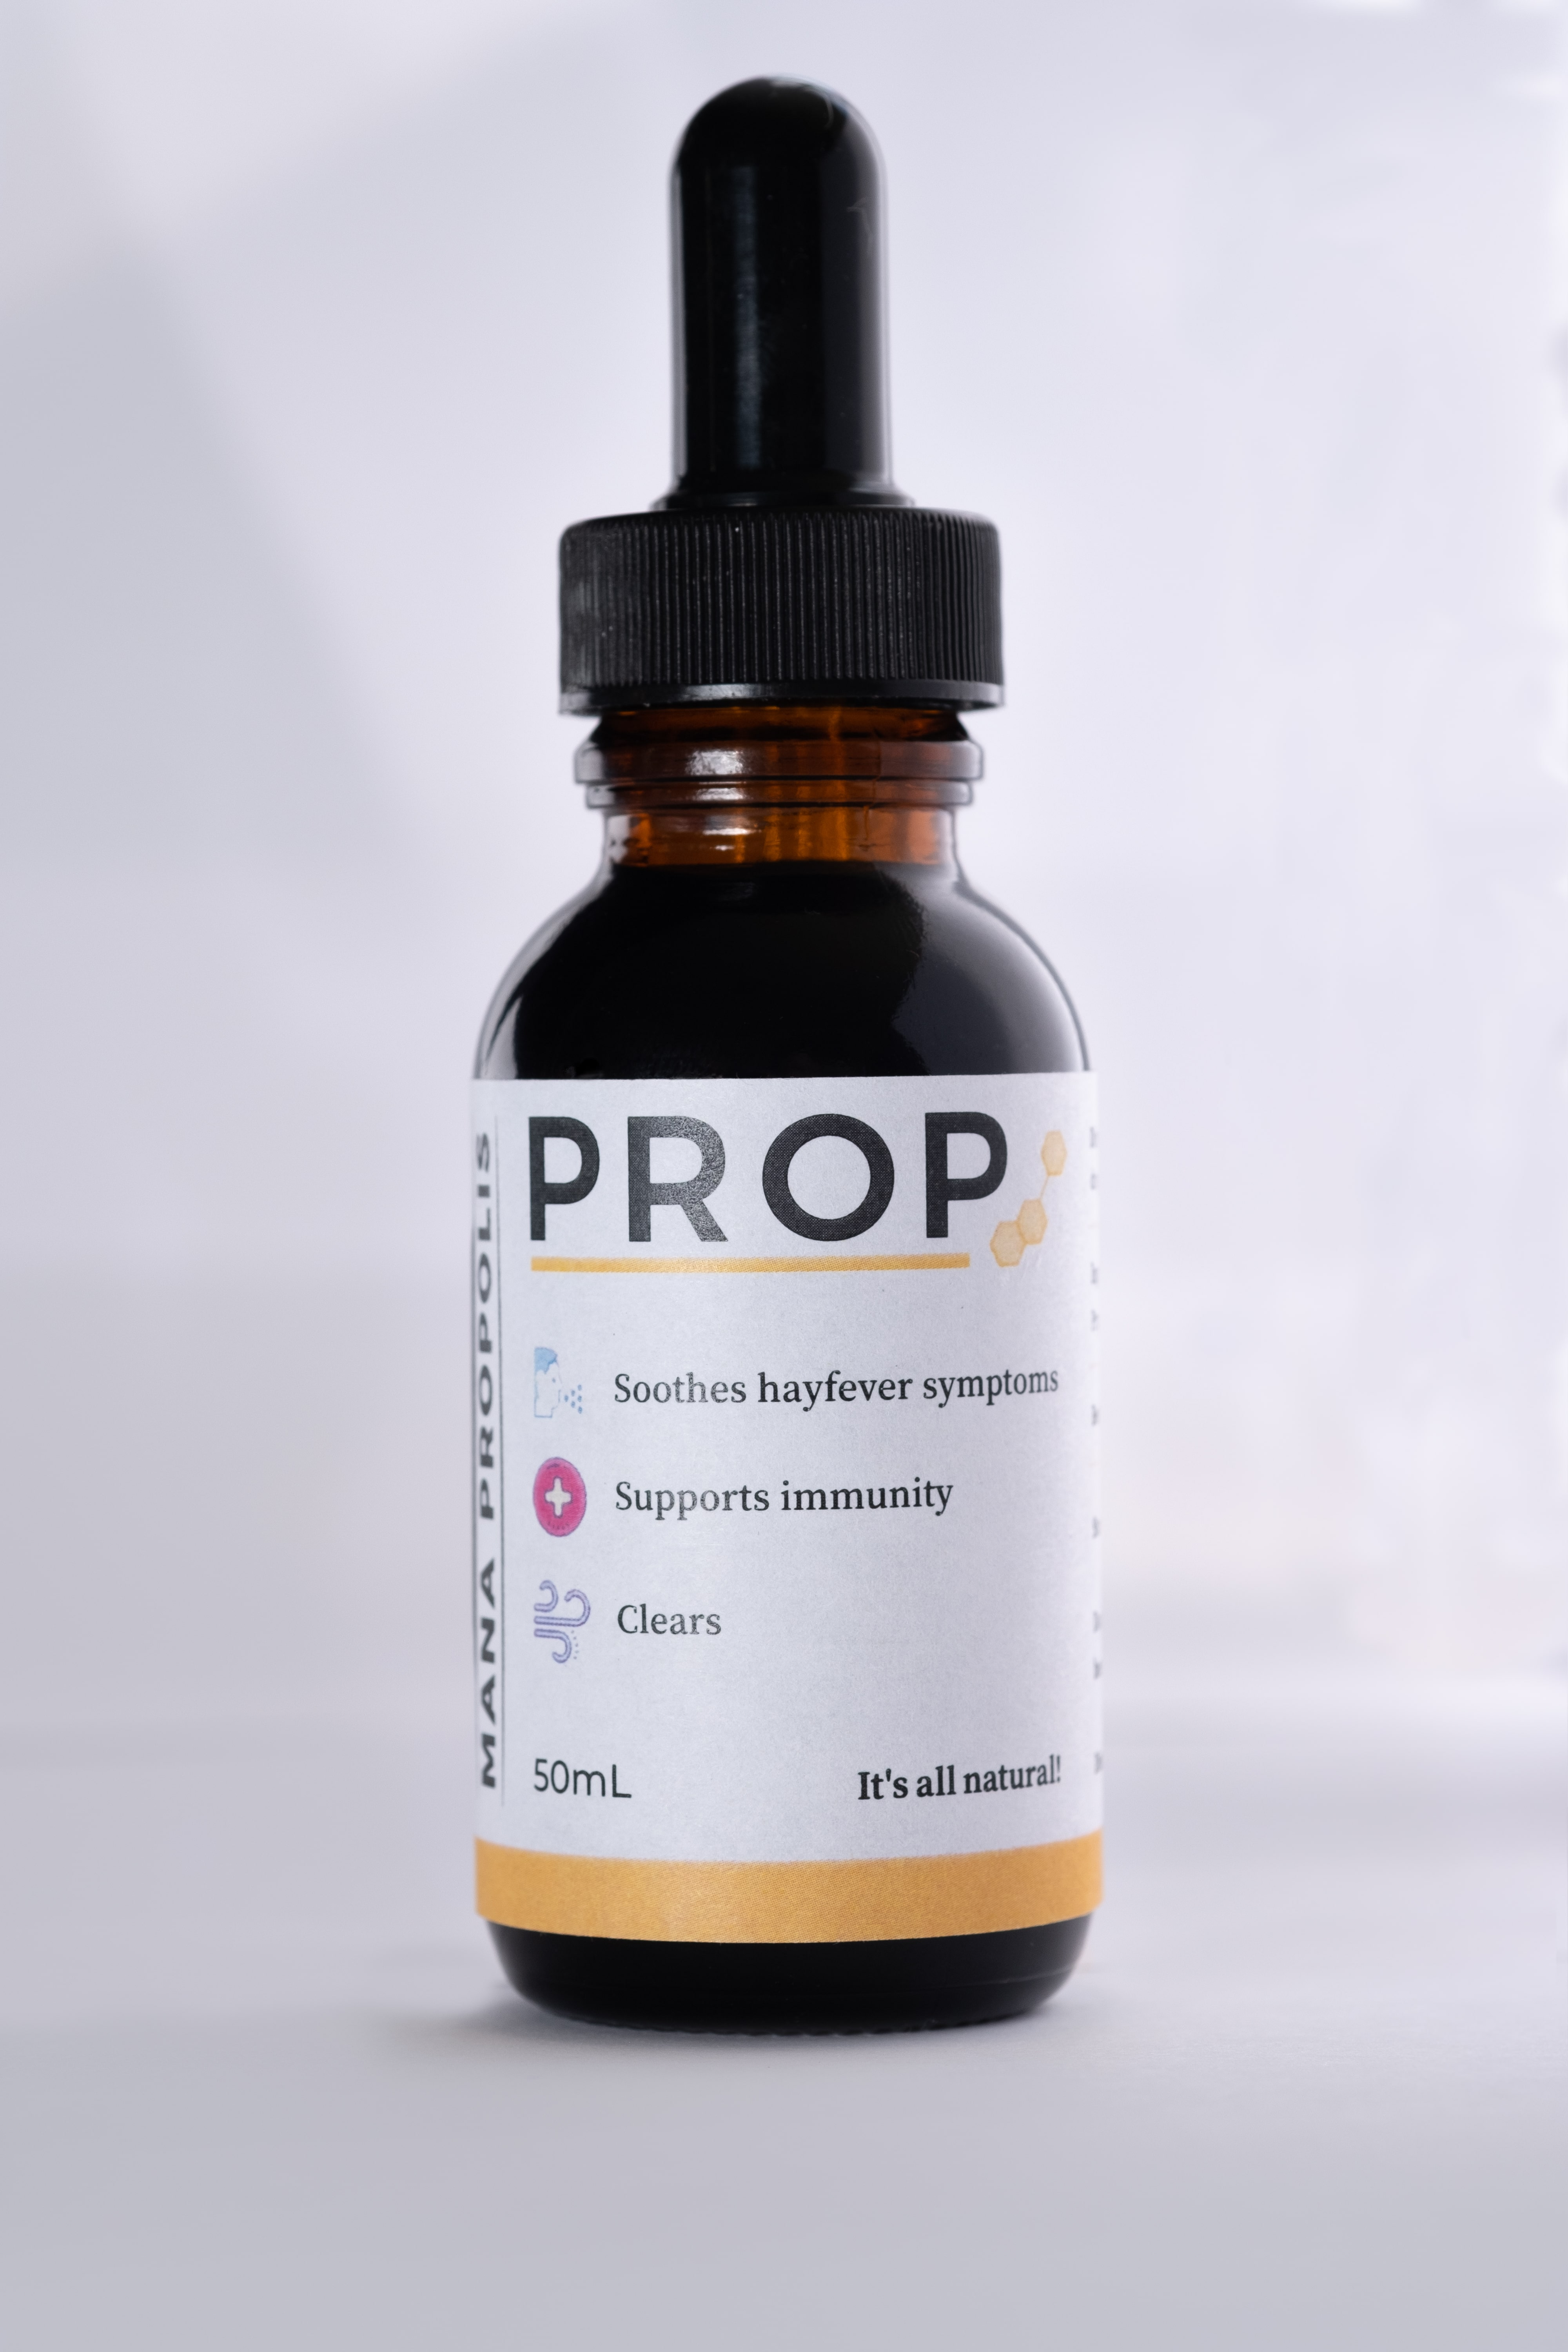 Try Prop For Your Sniffles